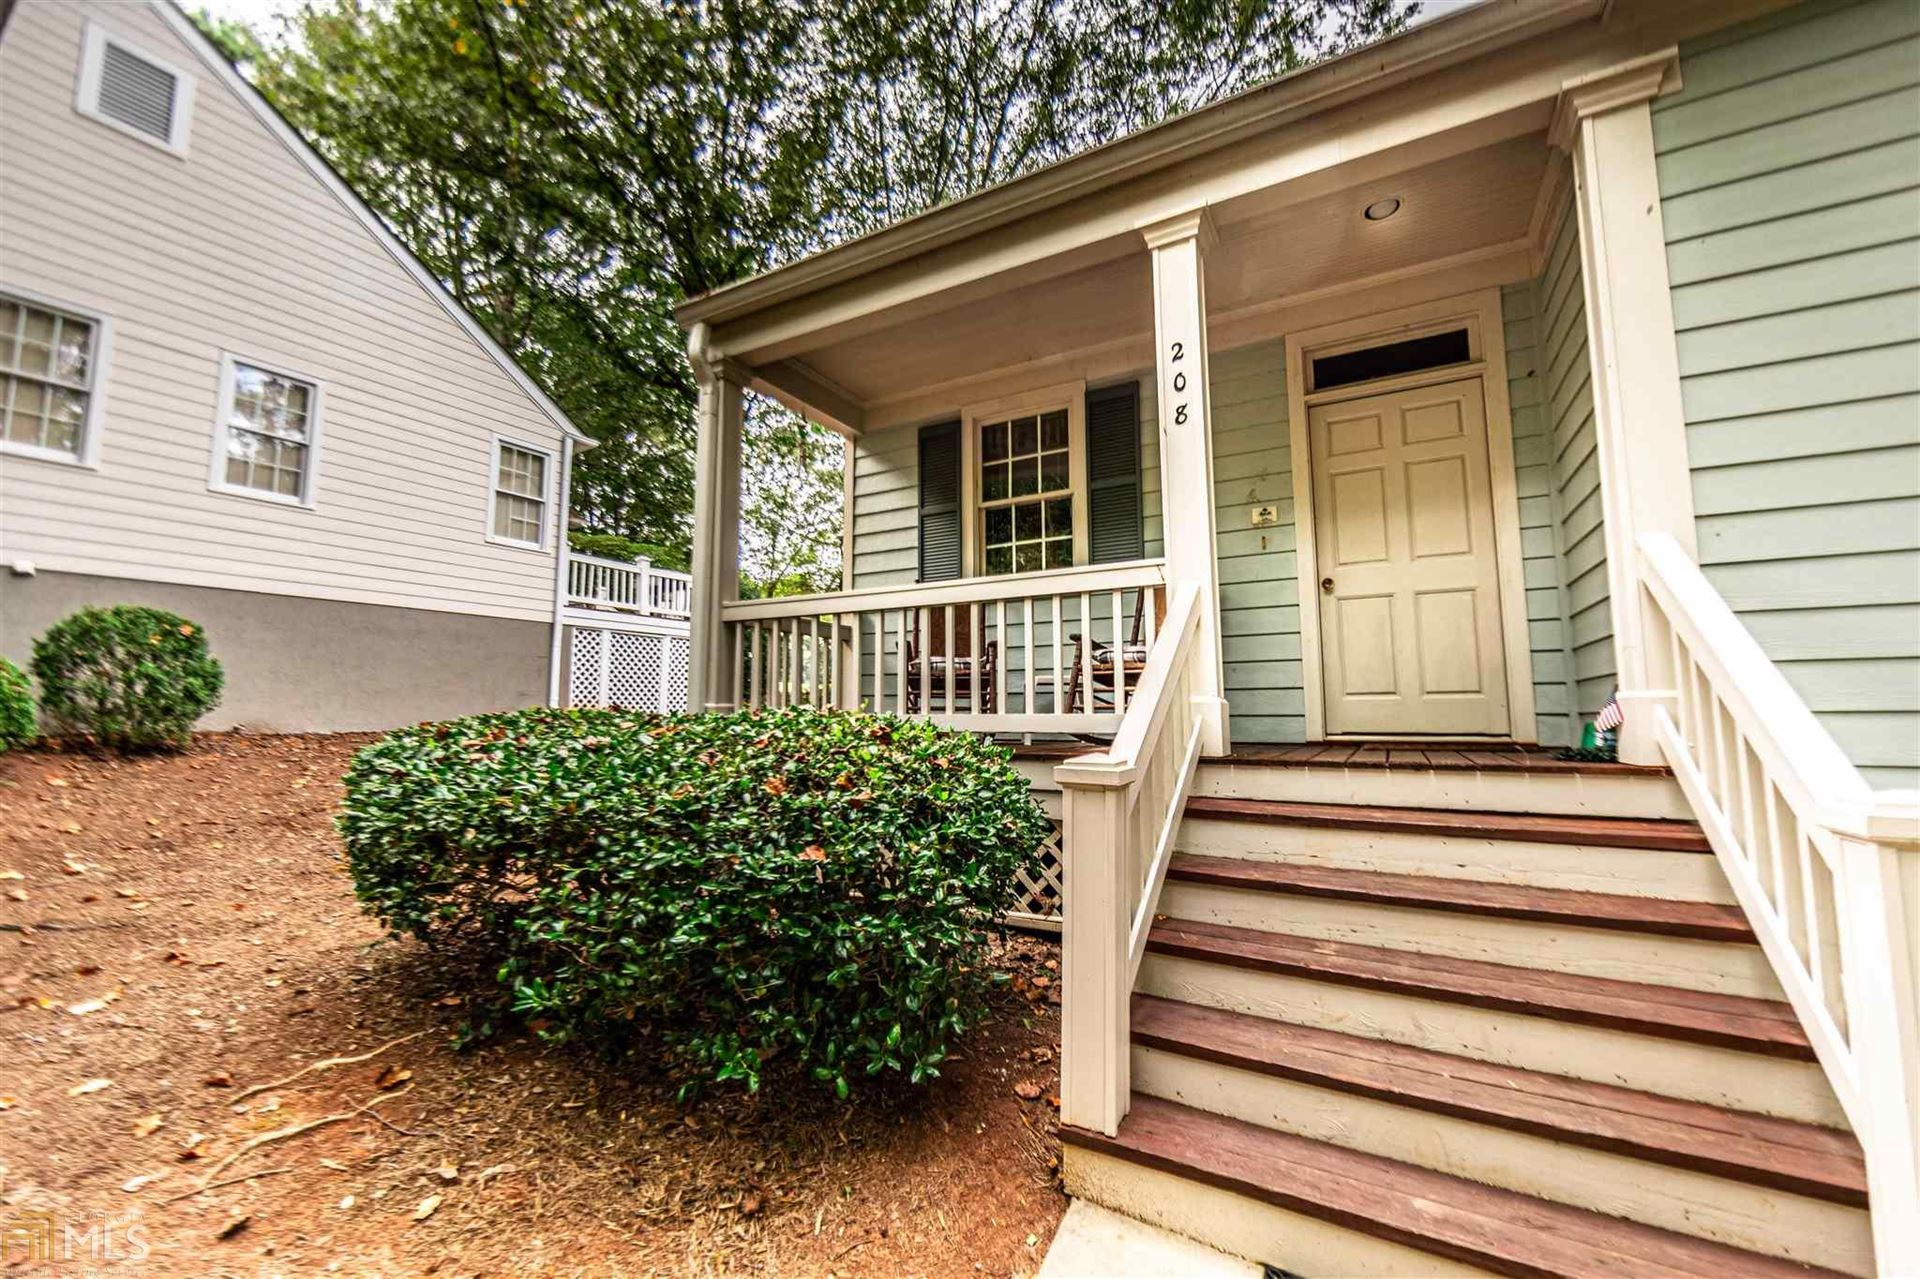 208 Beech Haven Ln, Eatonton, GA 31024 - MLS#: 8870466